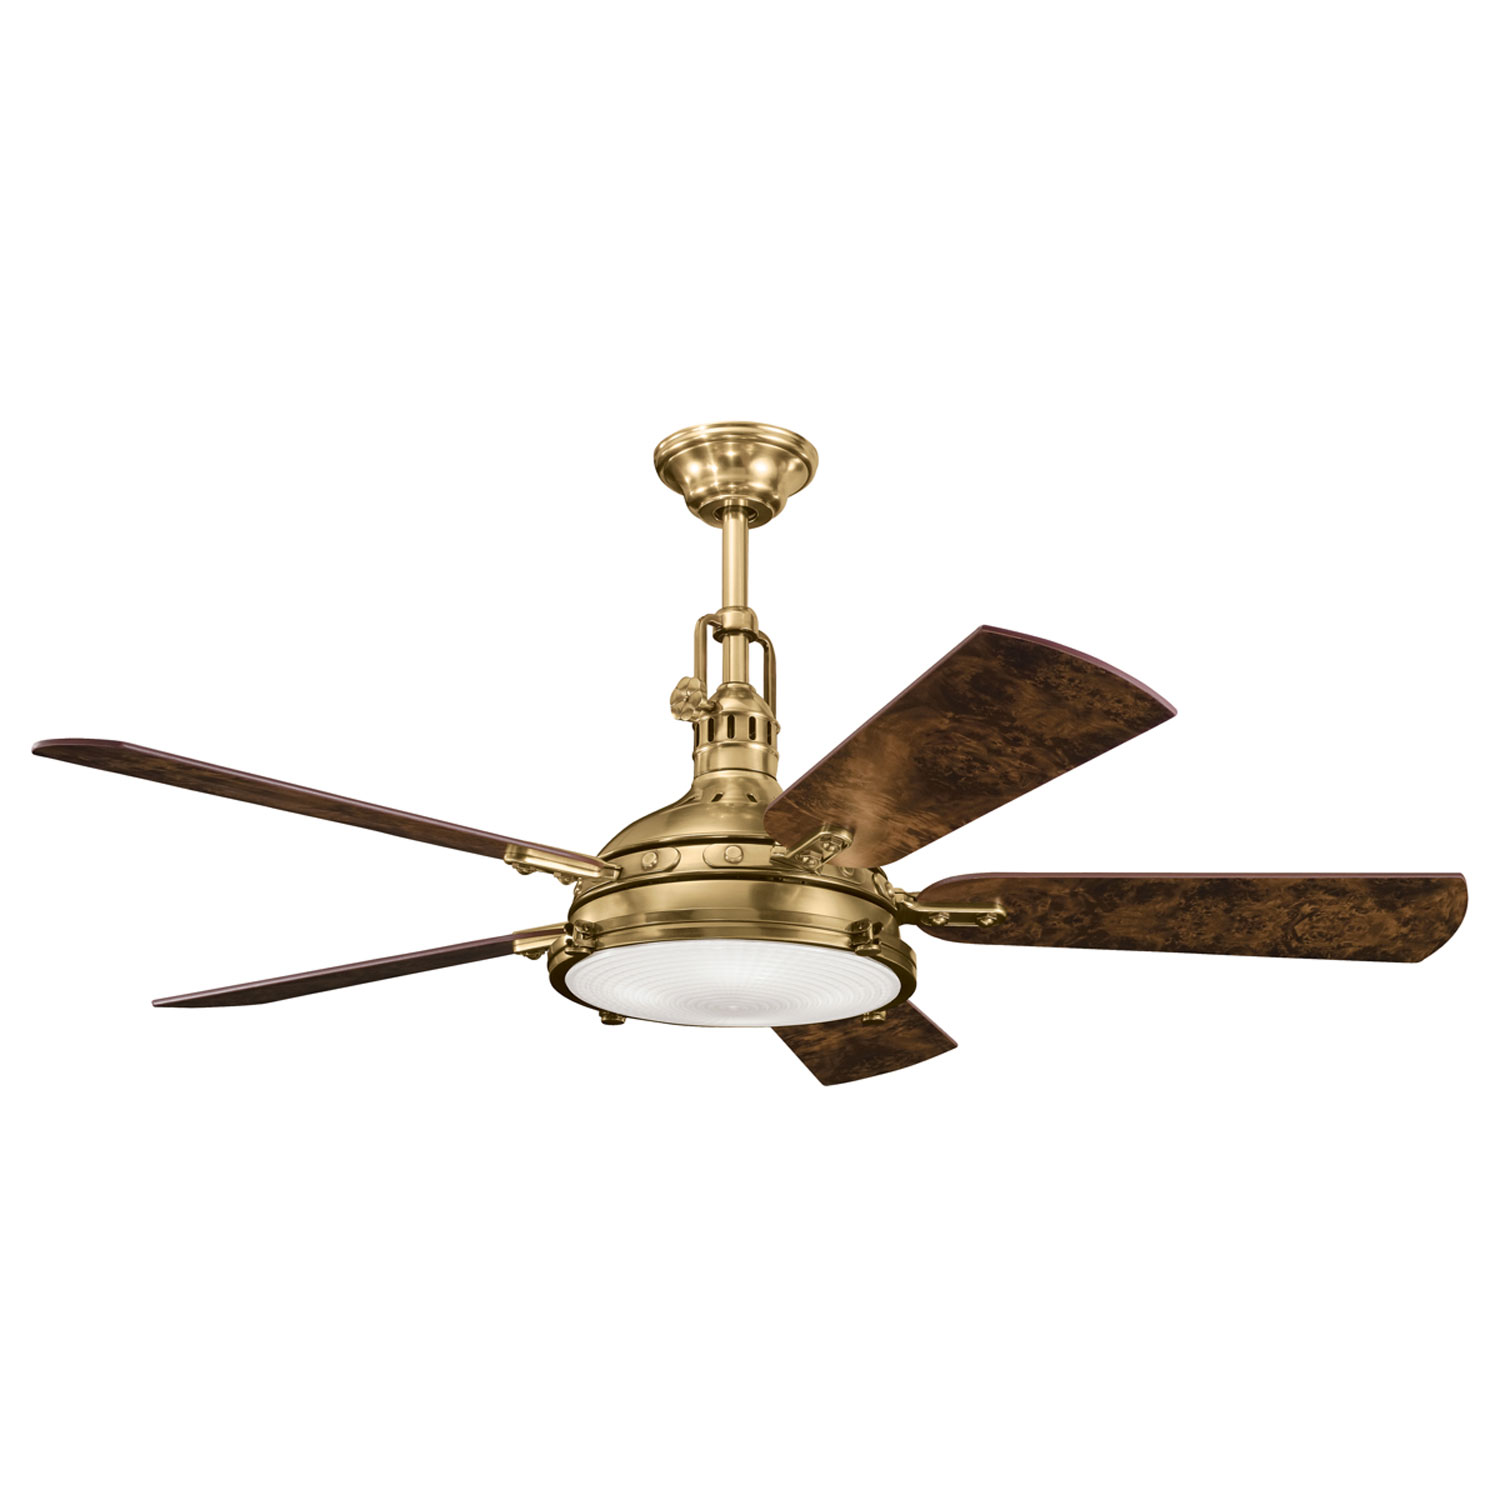 56 inchCeiling Fan from the Hatteras Bay collection by Kichler 300018BAB